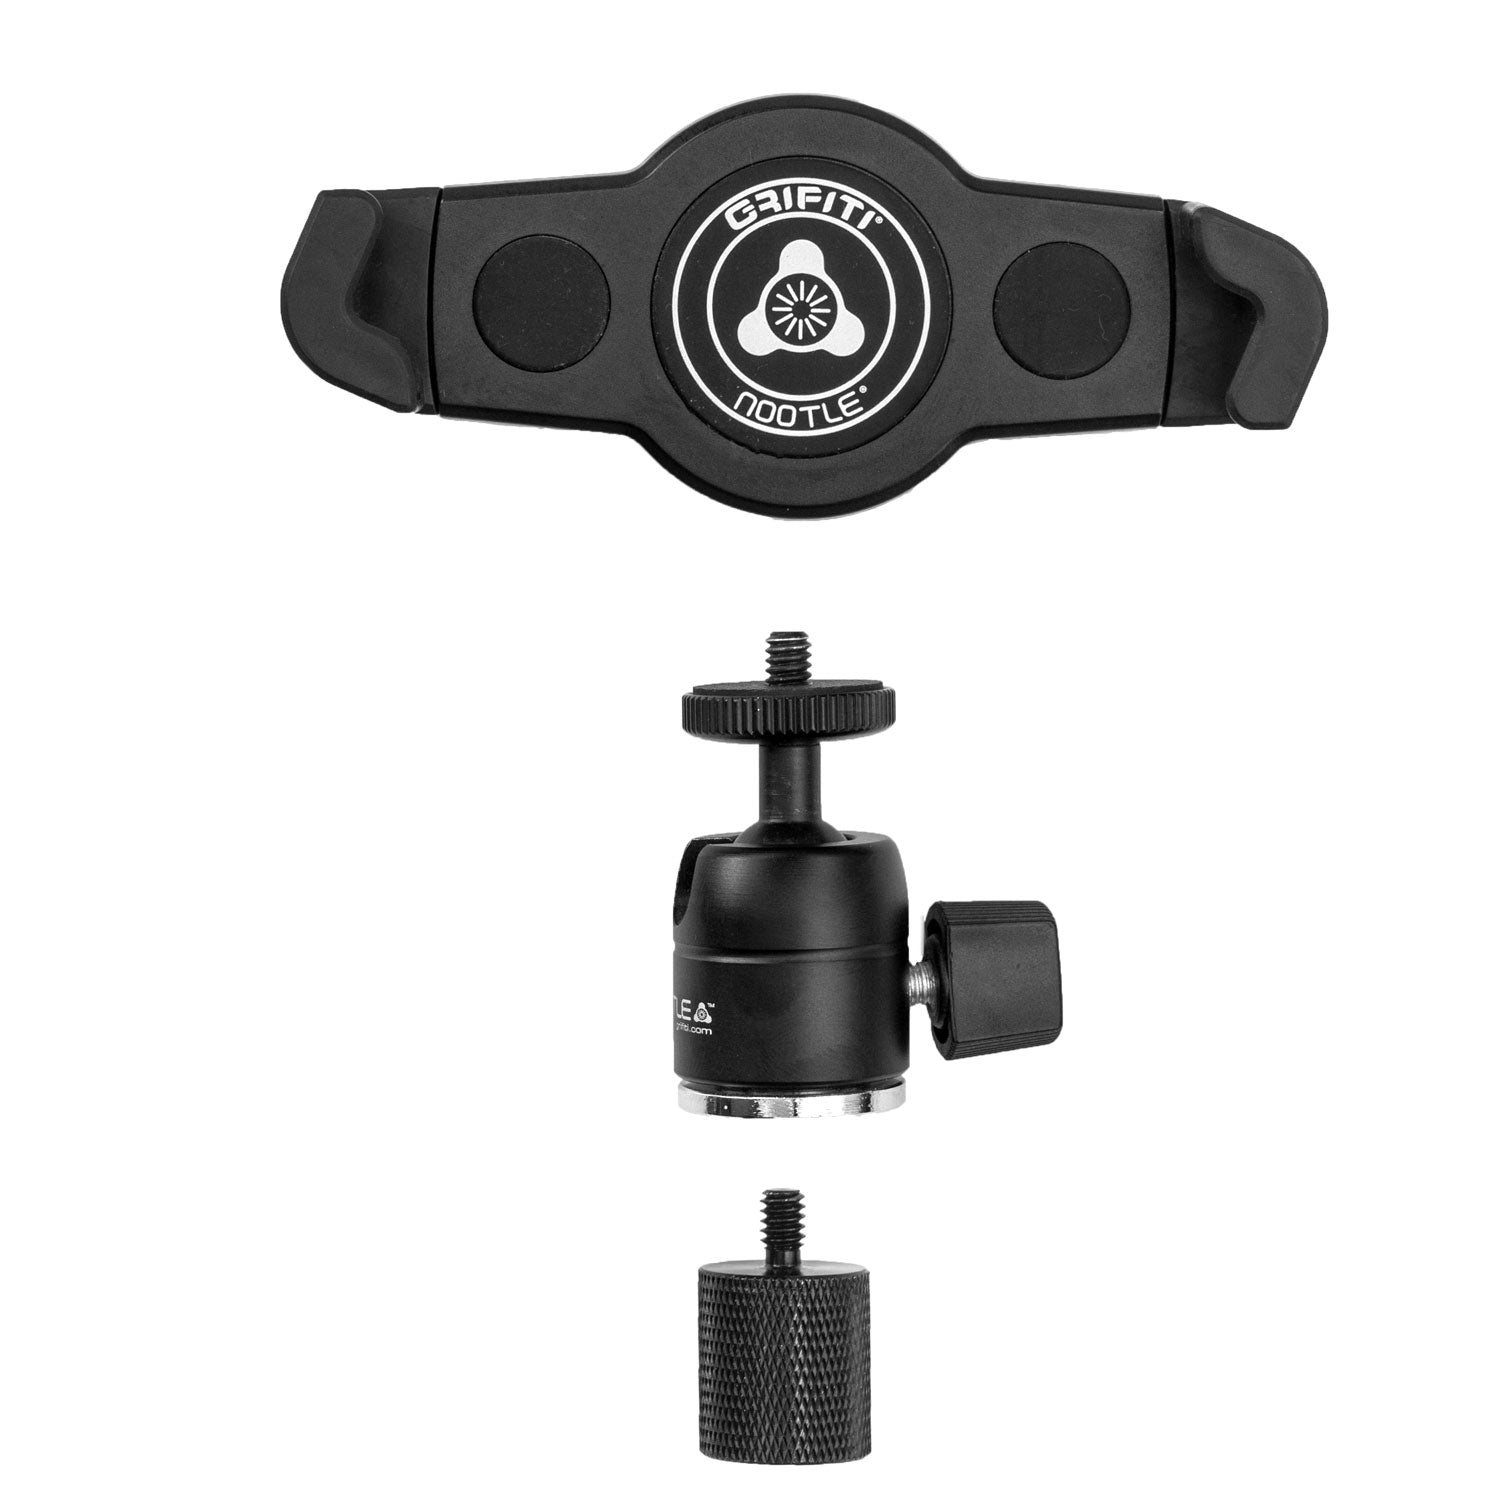 Grifiti Nootle Music Stand Retrofit Adaptor Mini Ball Head and Phone or Tablet Mount Bundles - Grifiti